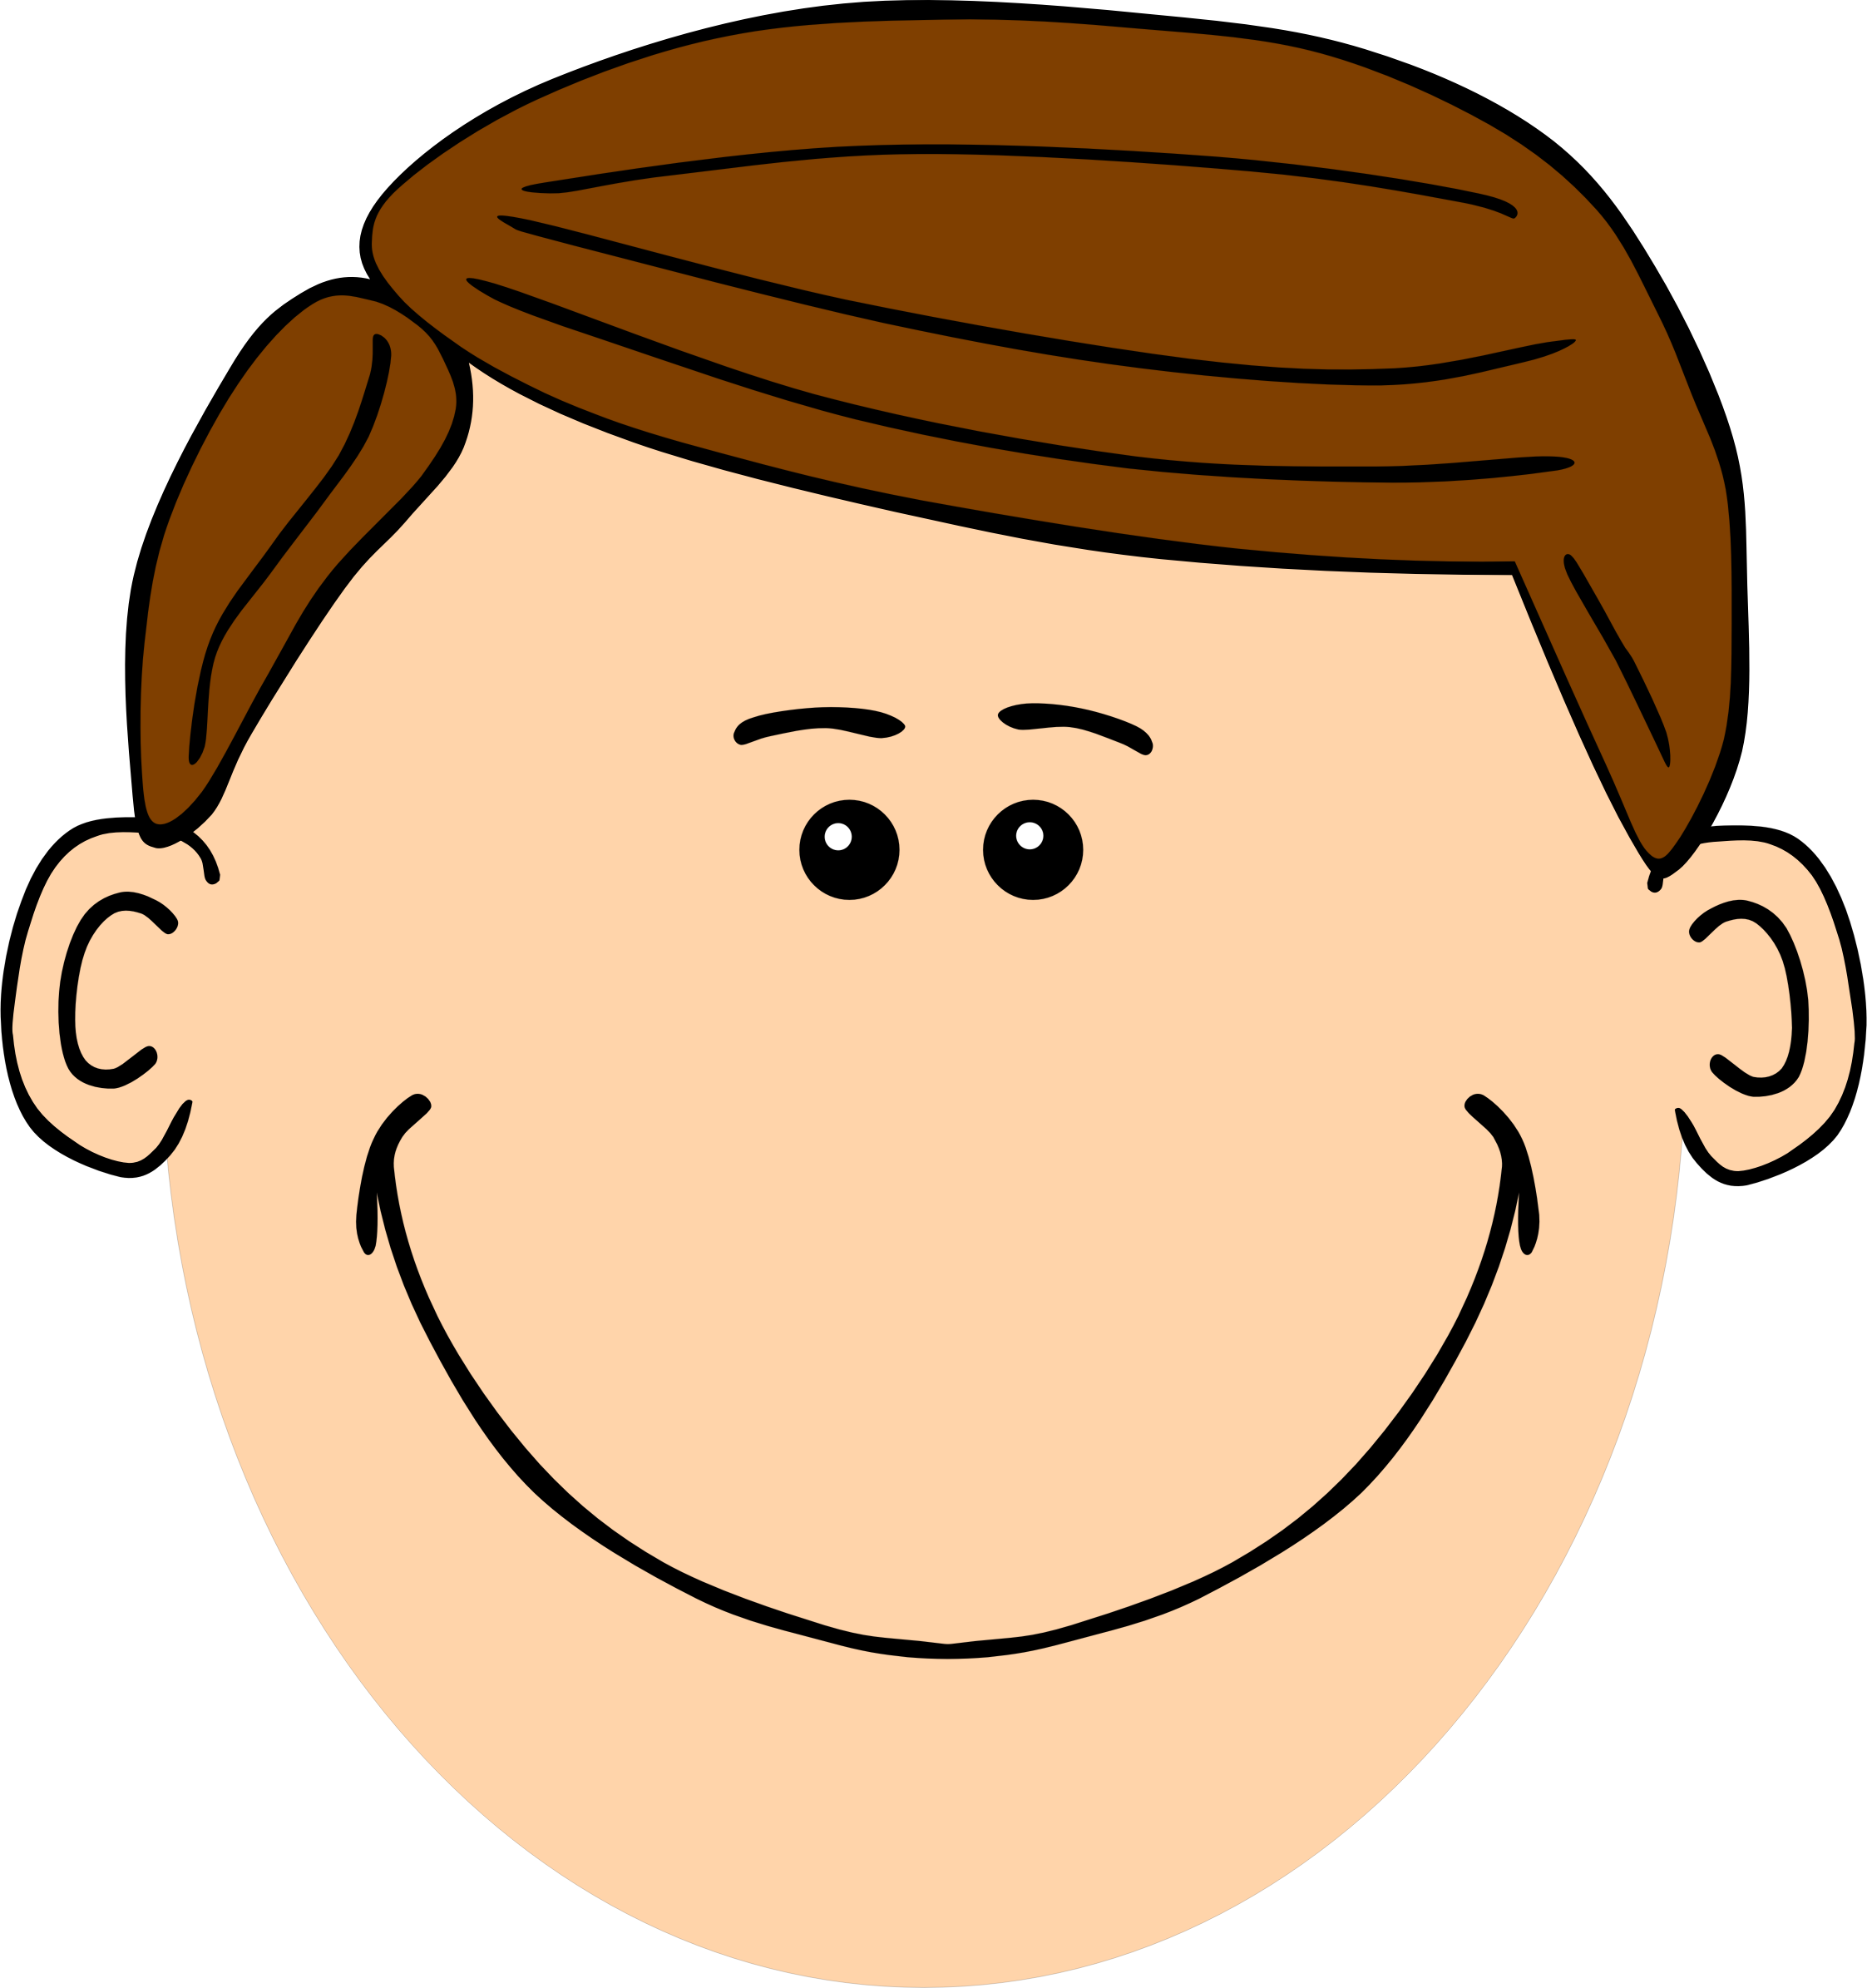 Lungs clipart animated. Brown haired dad big